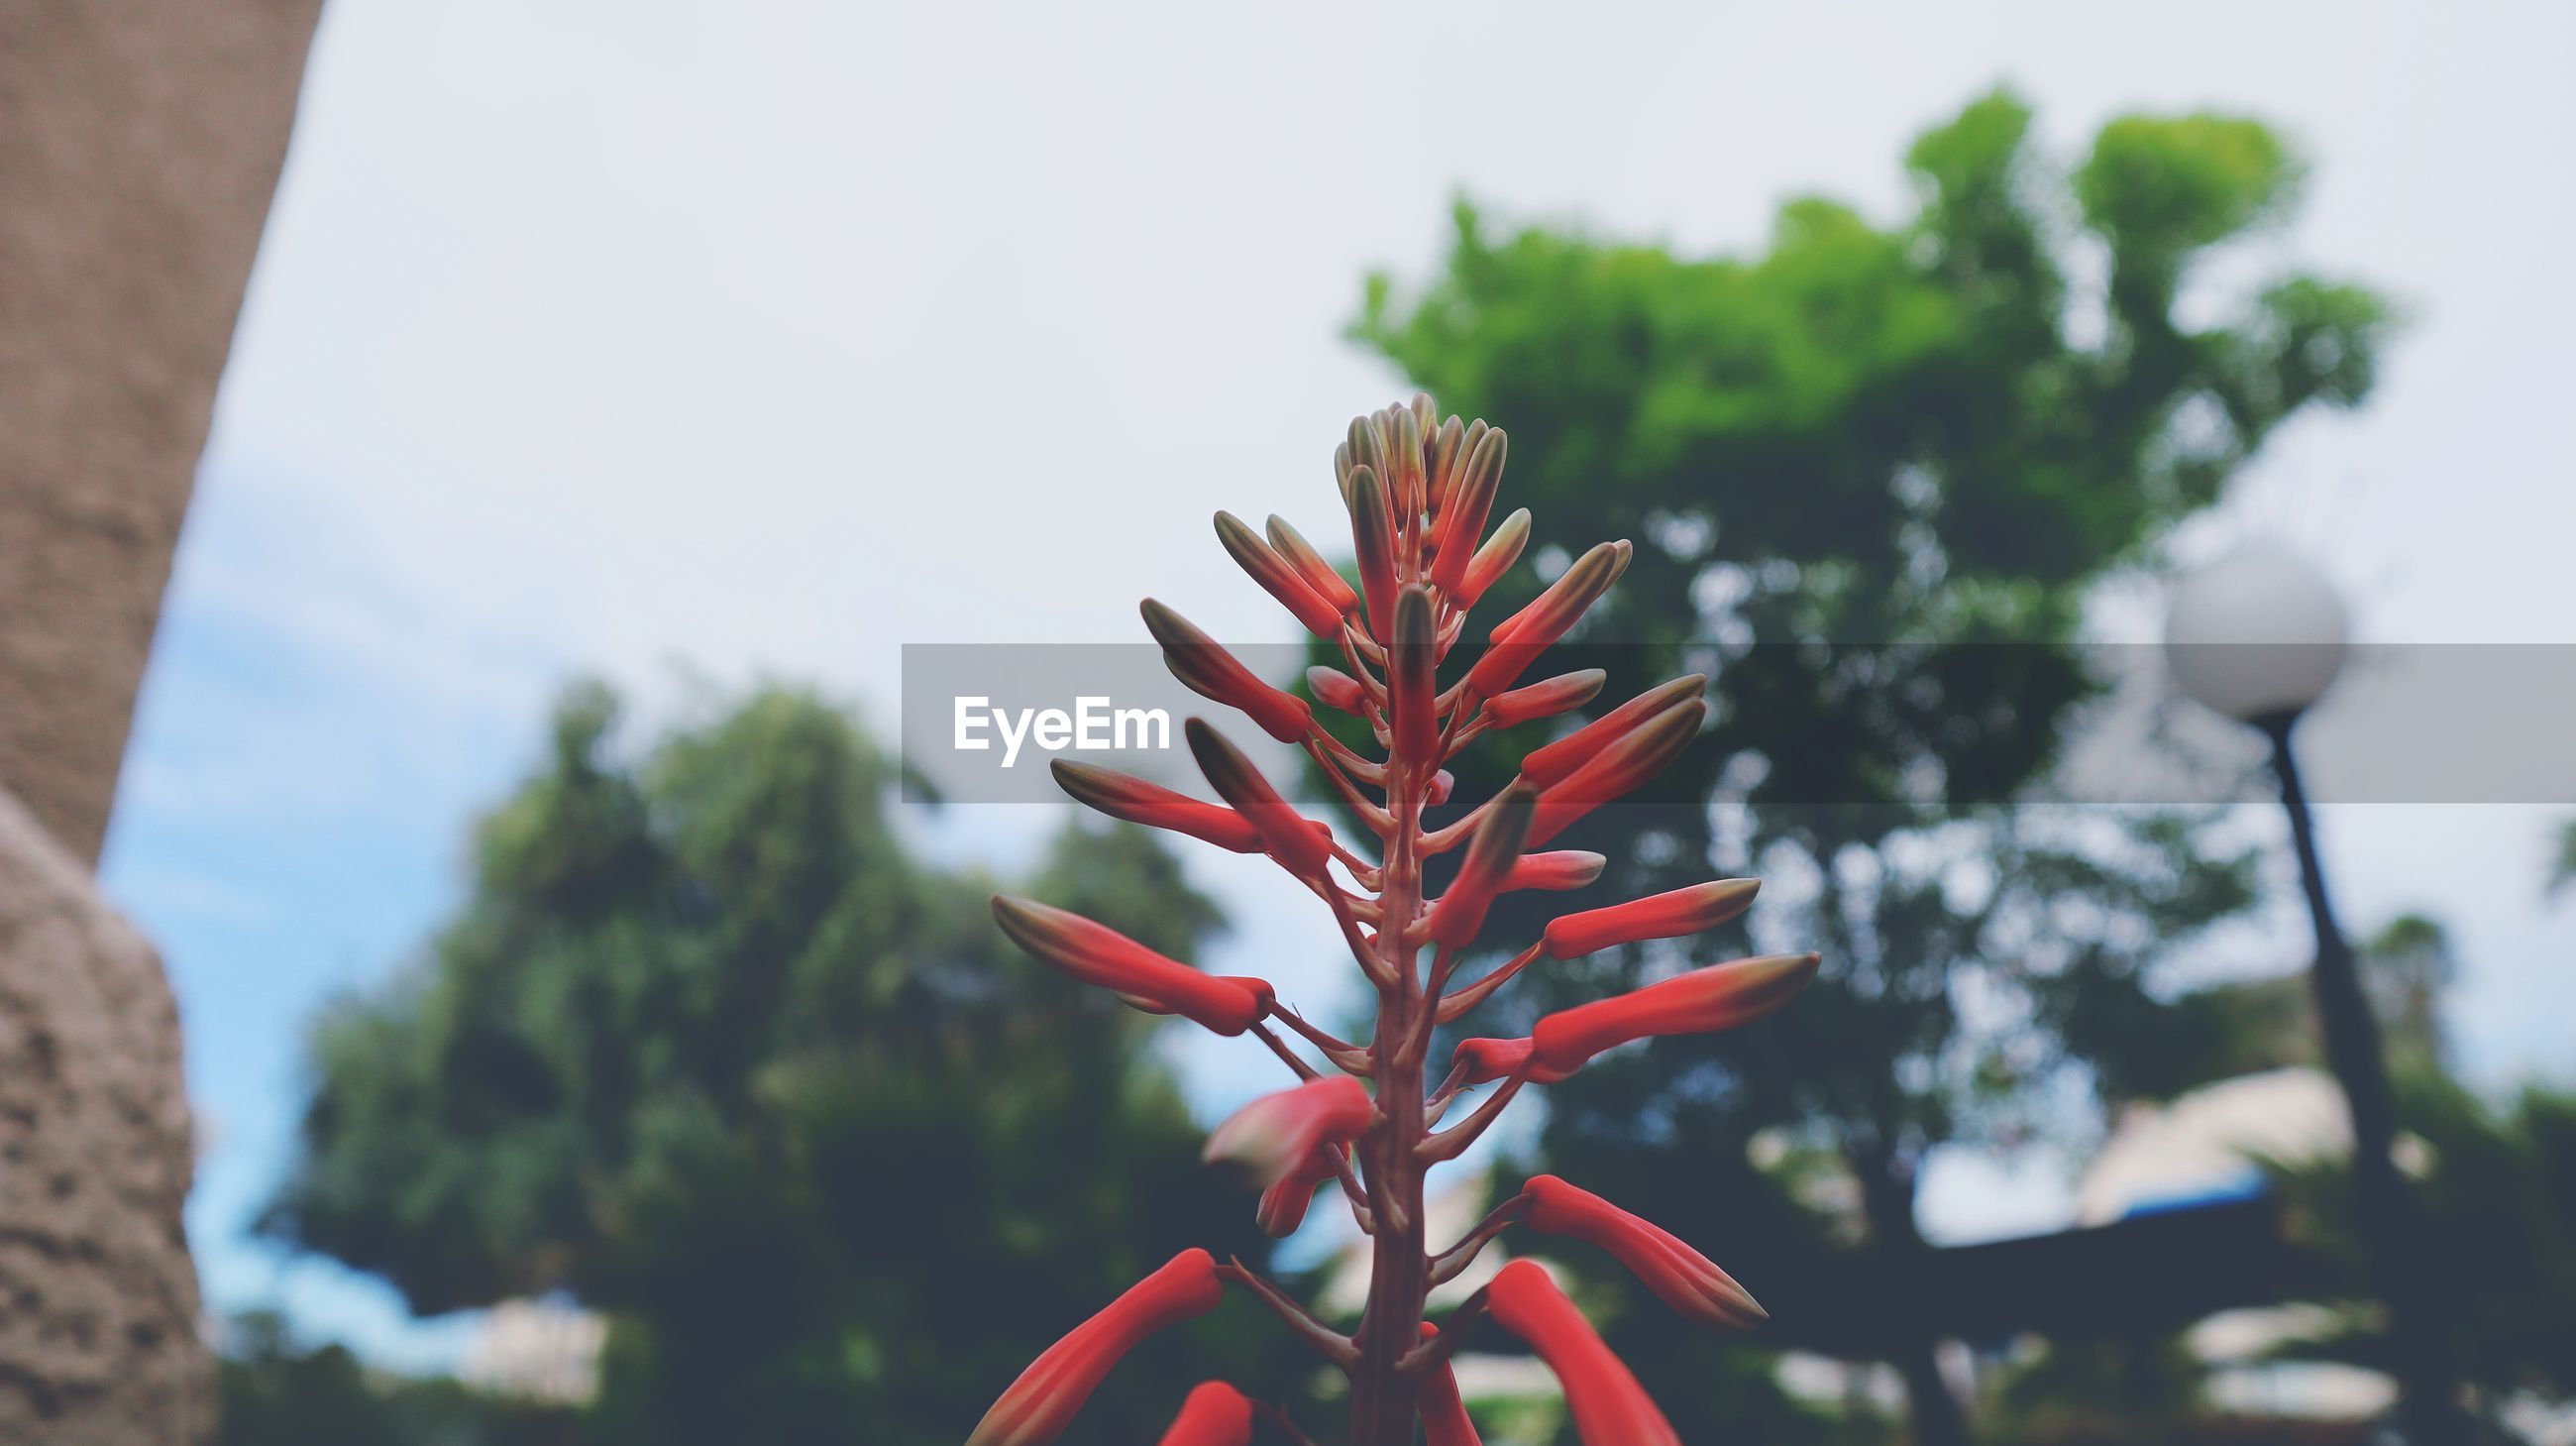 CLOSE-UP OF RED FLOWERING PLANT AGAINST TREE